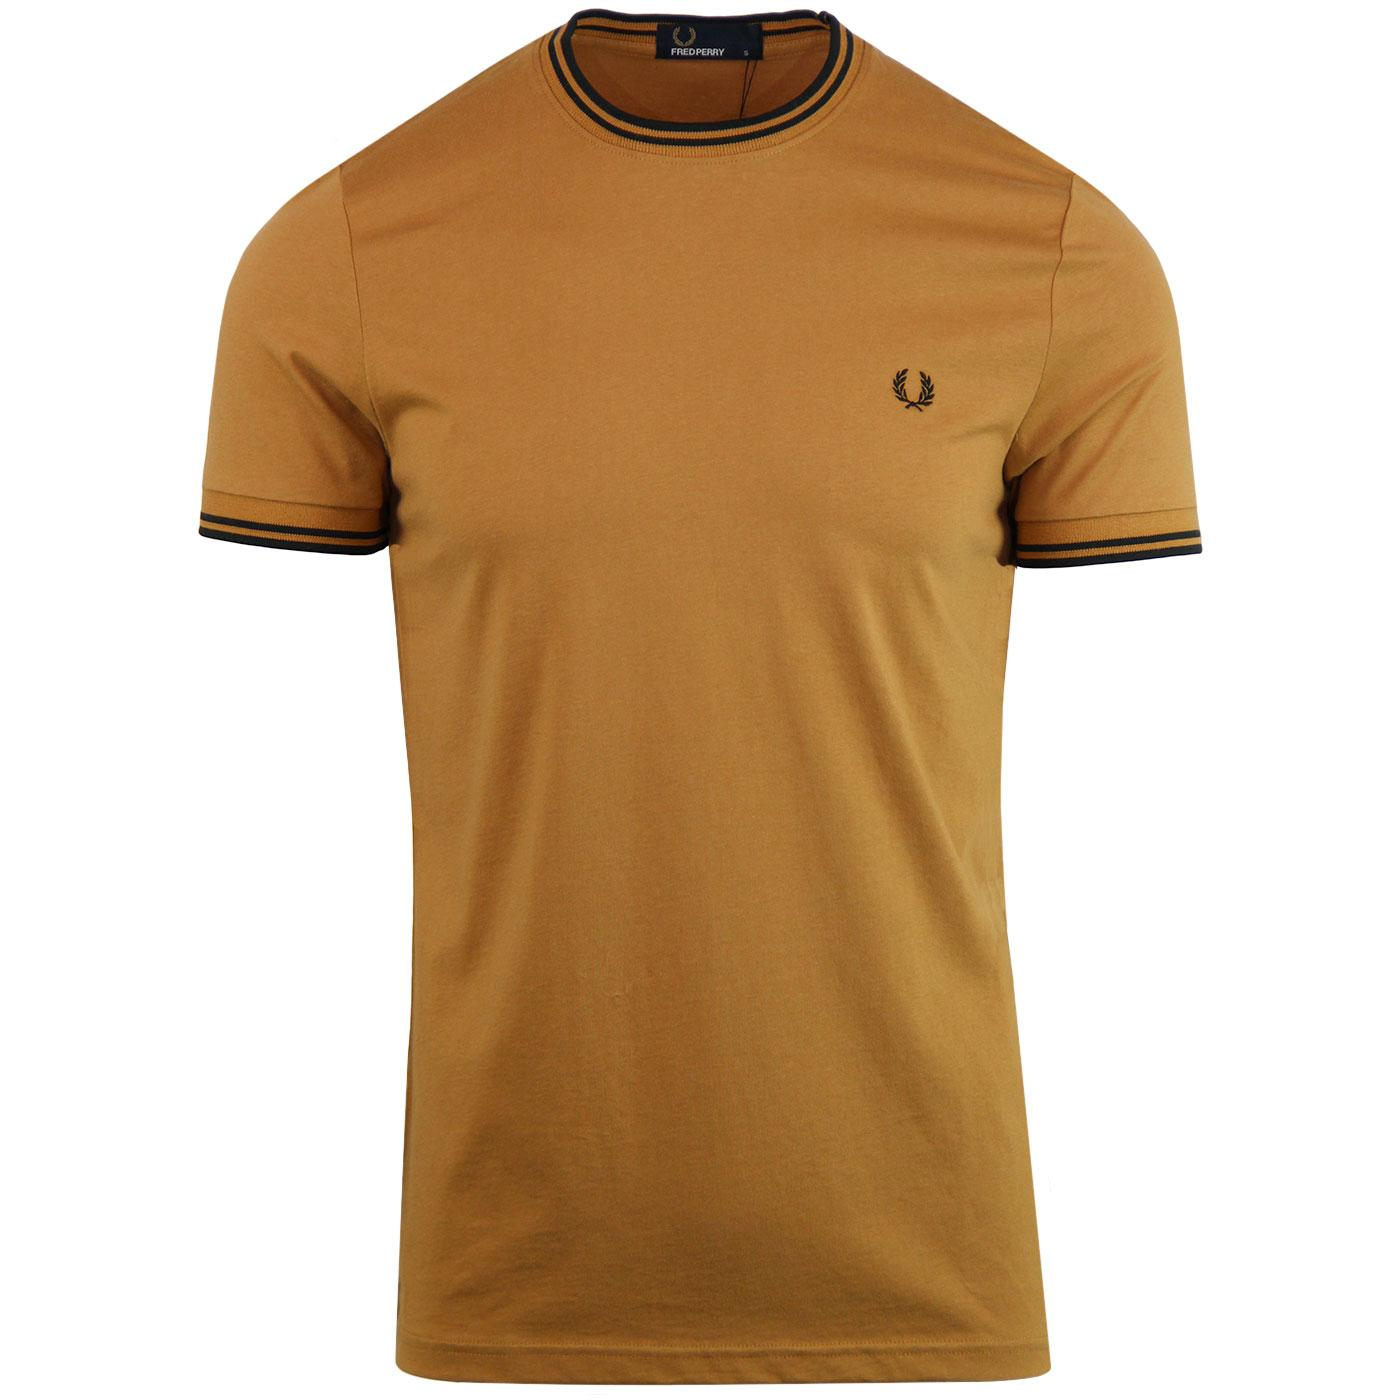 FRED PERRY Retro Twin Tipped Crew T-shirt CARAMEL